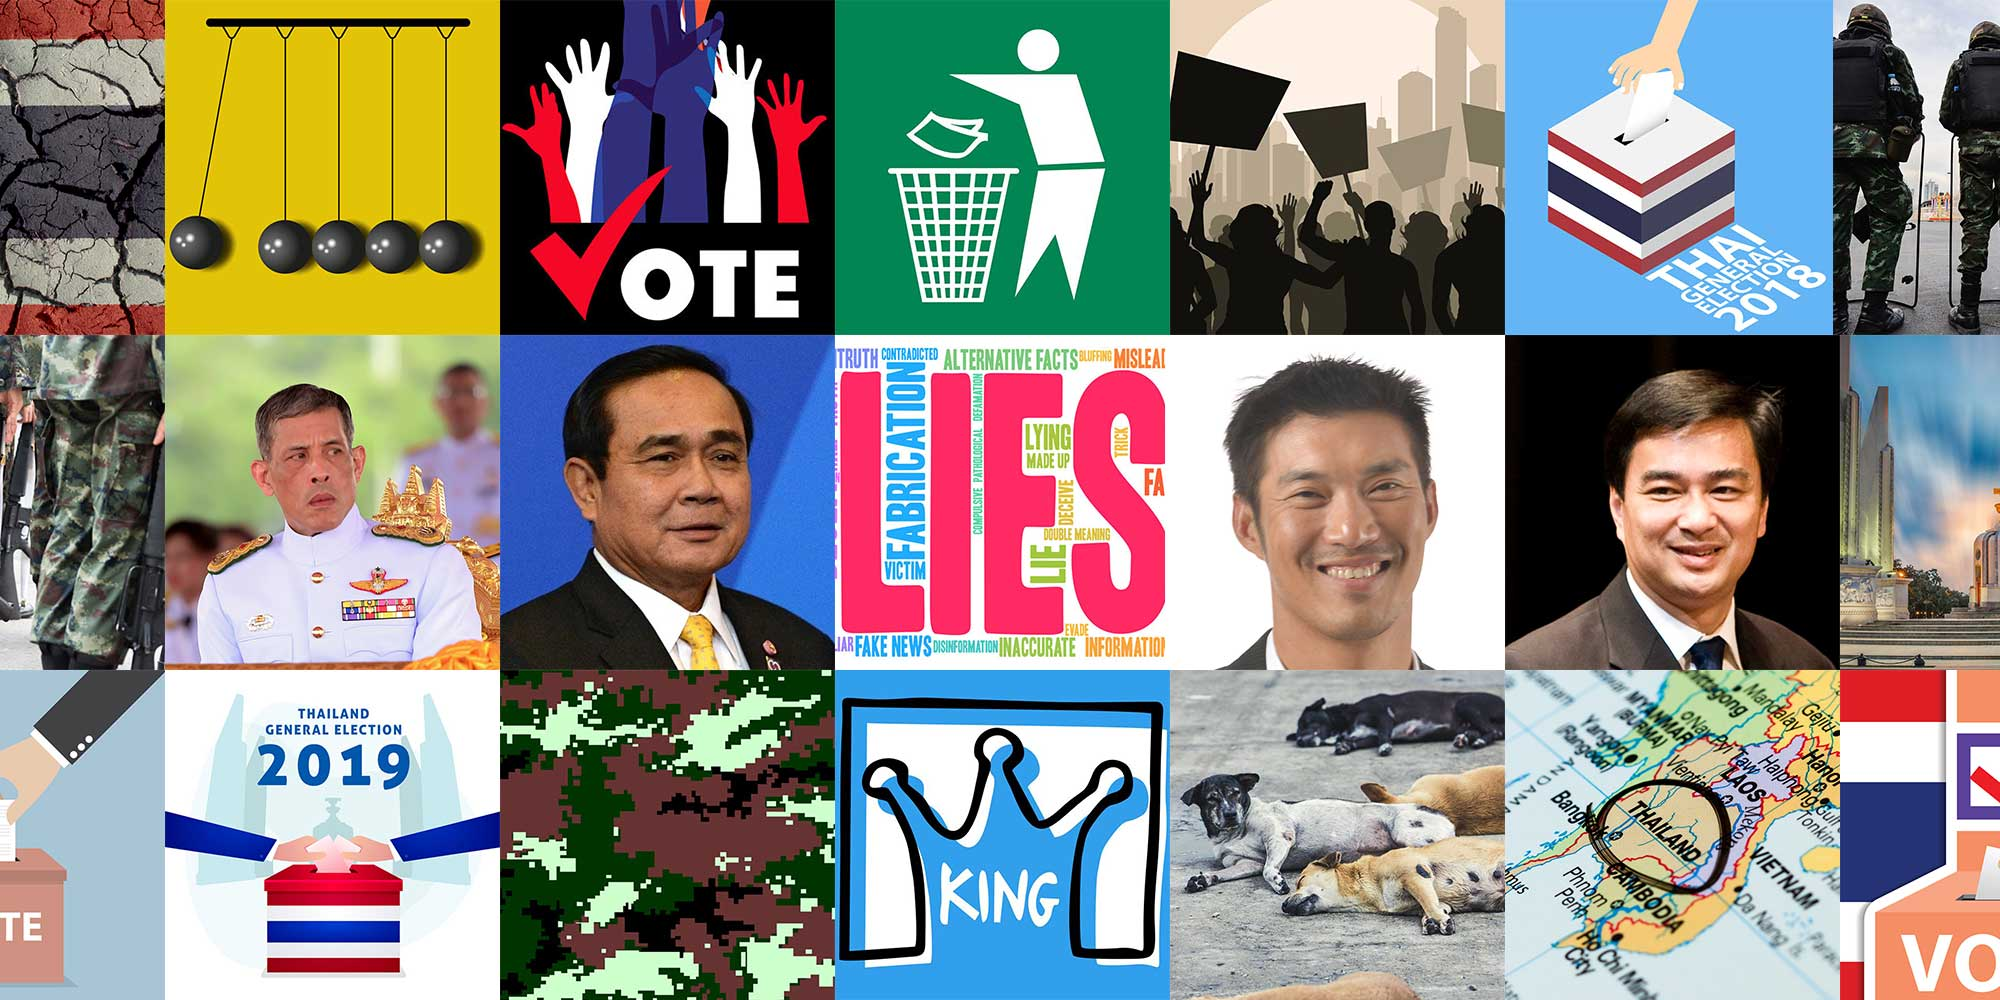 Thailand-vote-2019-collage-FORSEA